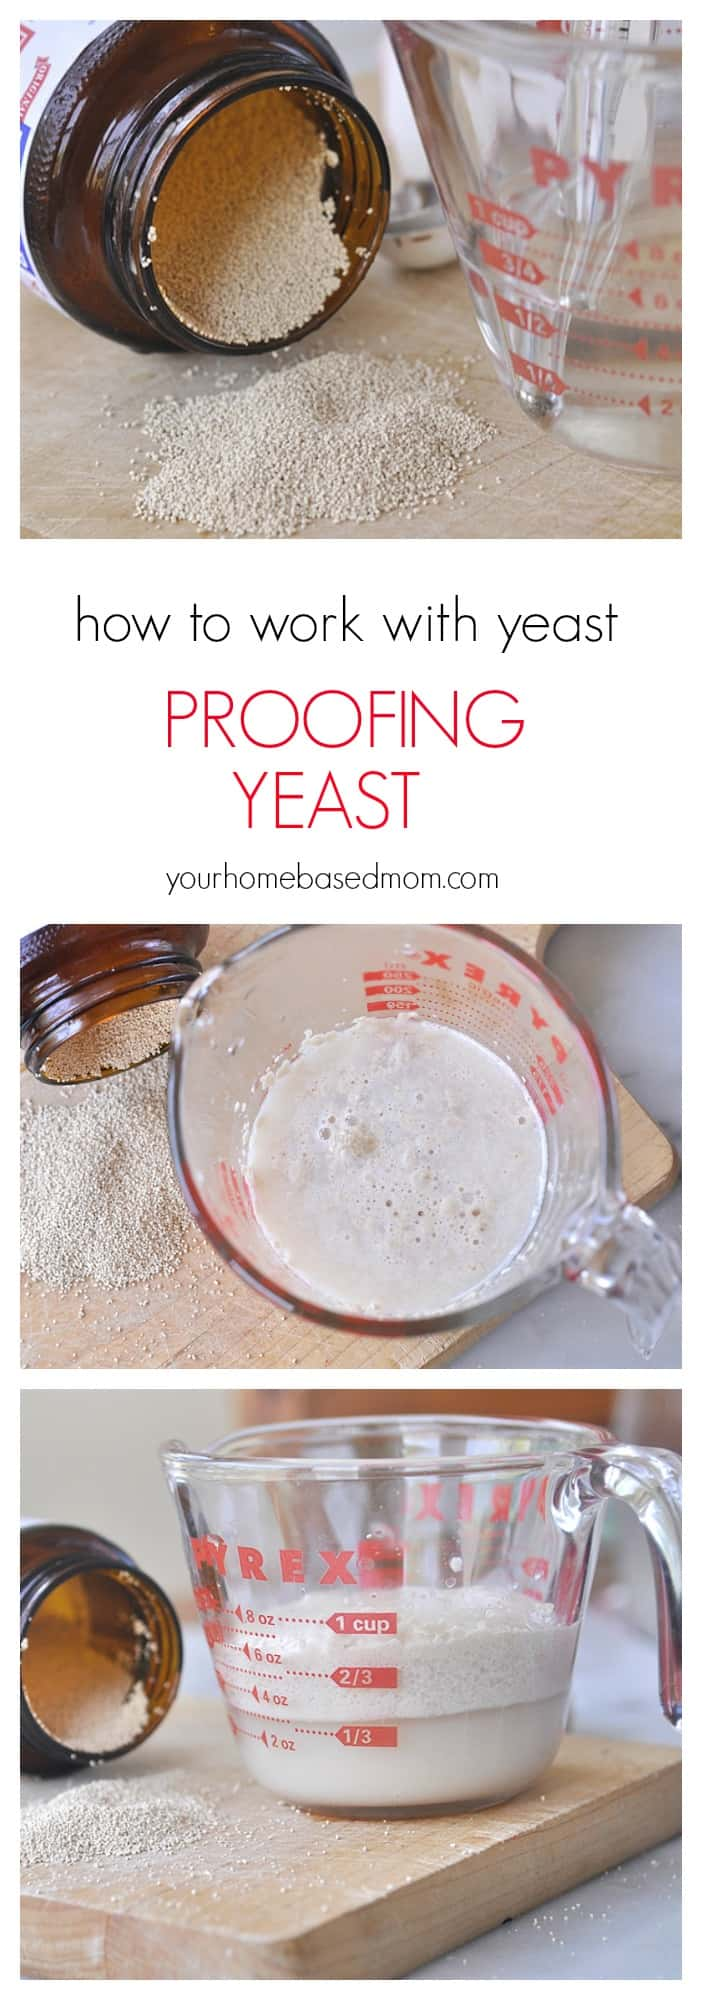 Step by Step how to work with yeast - make perfect bread everytime! @yourhomebasedmom.com